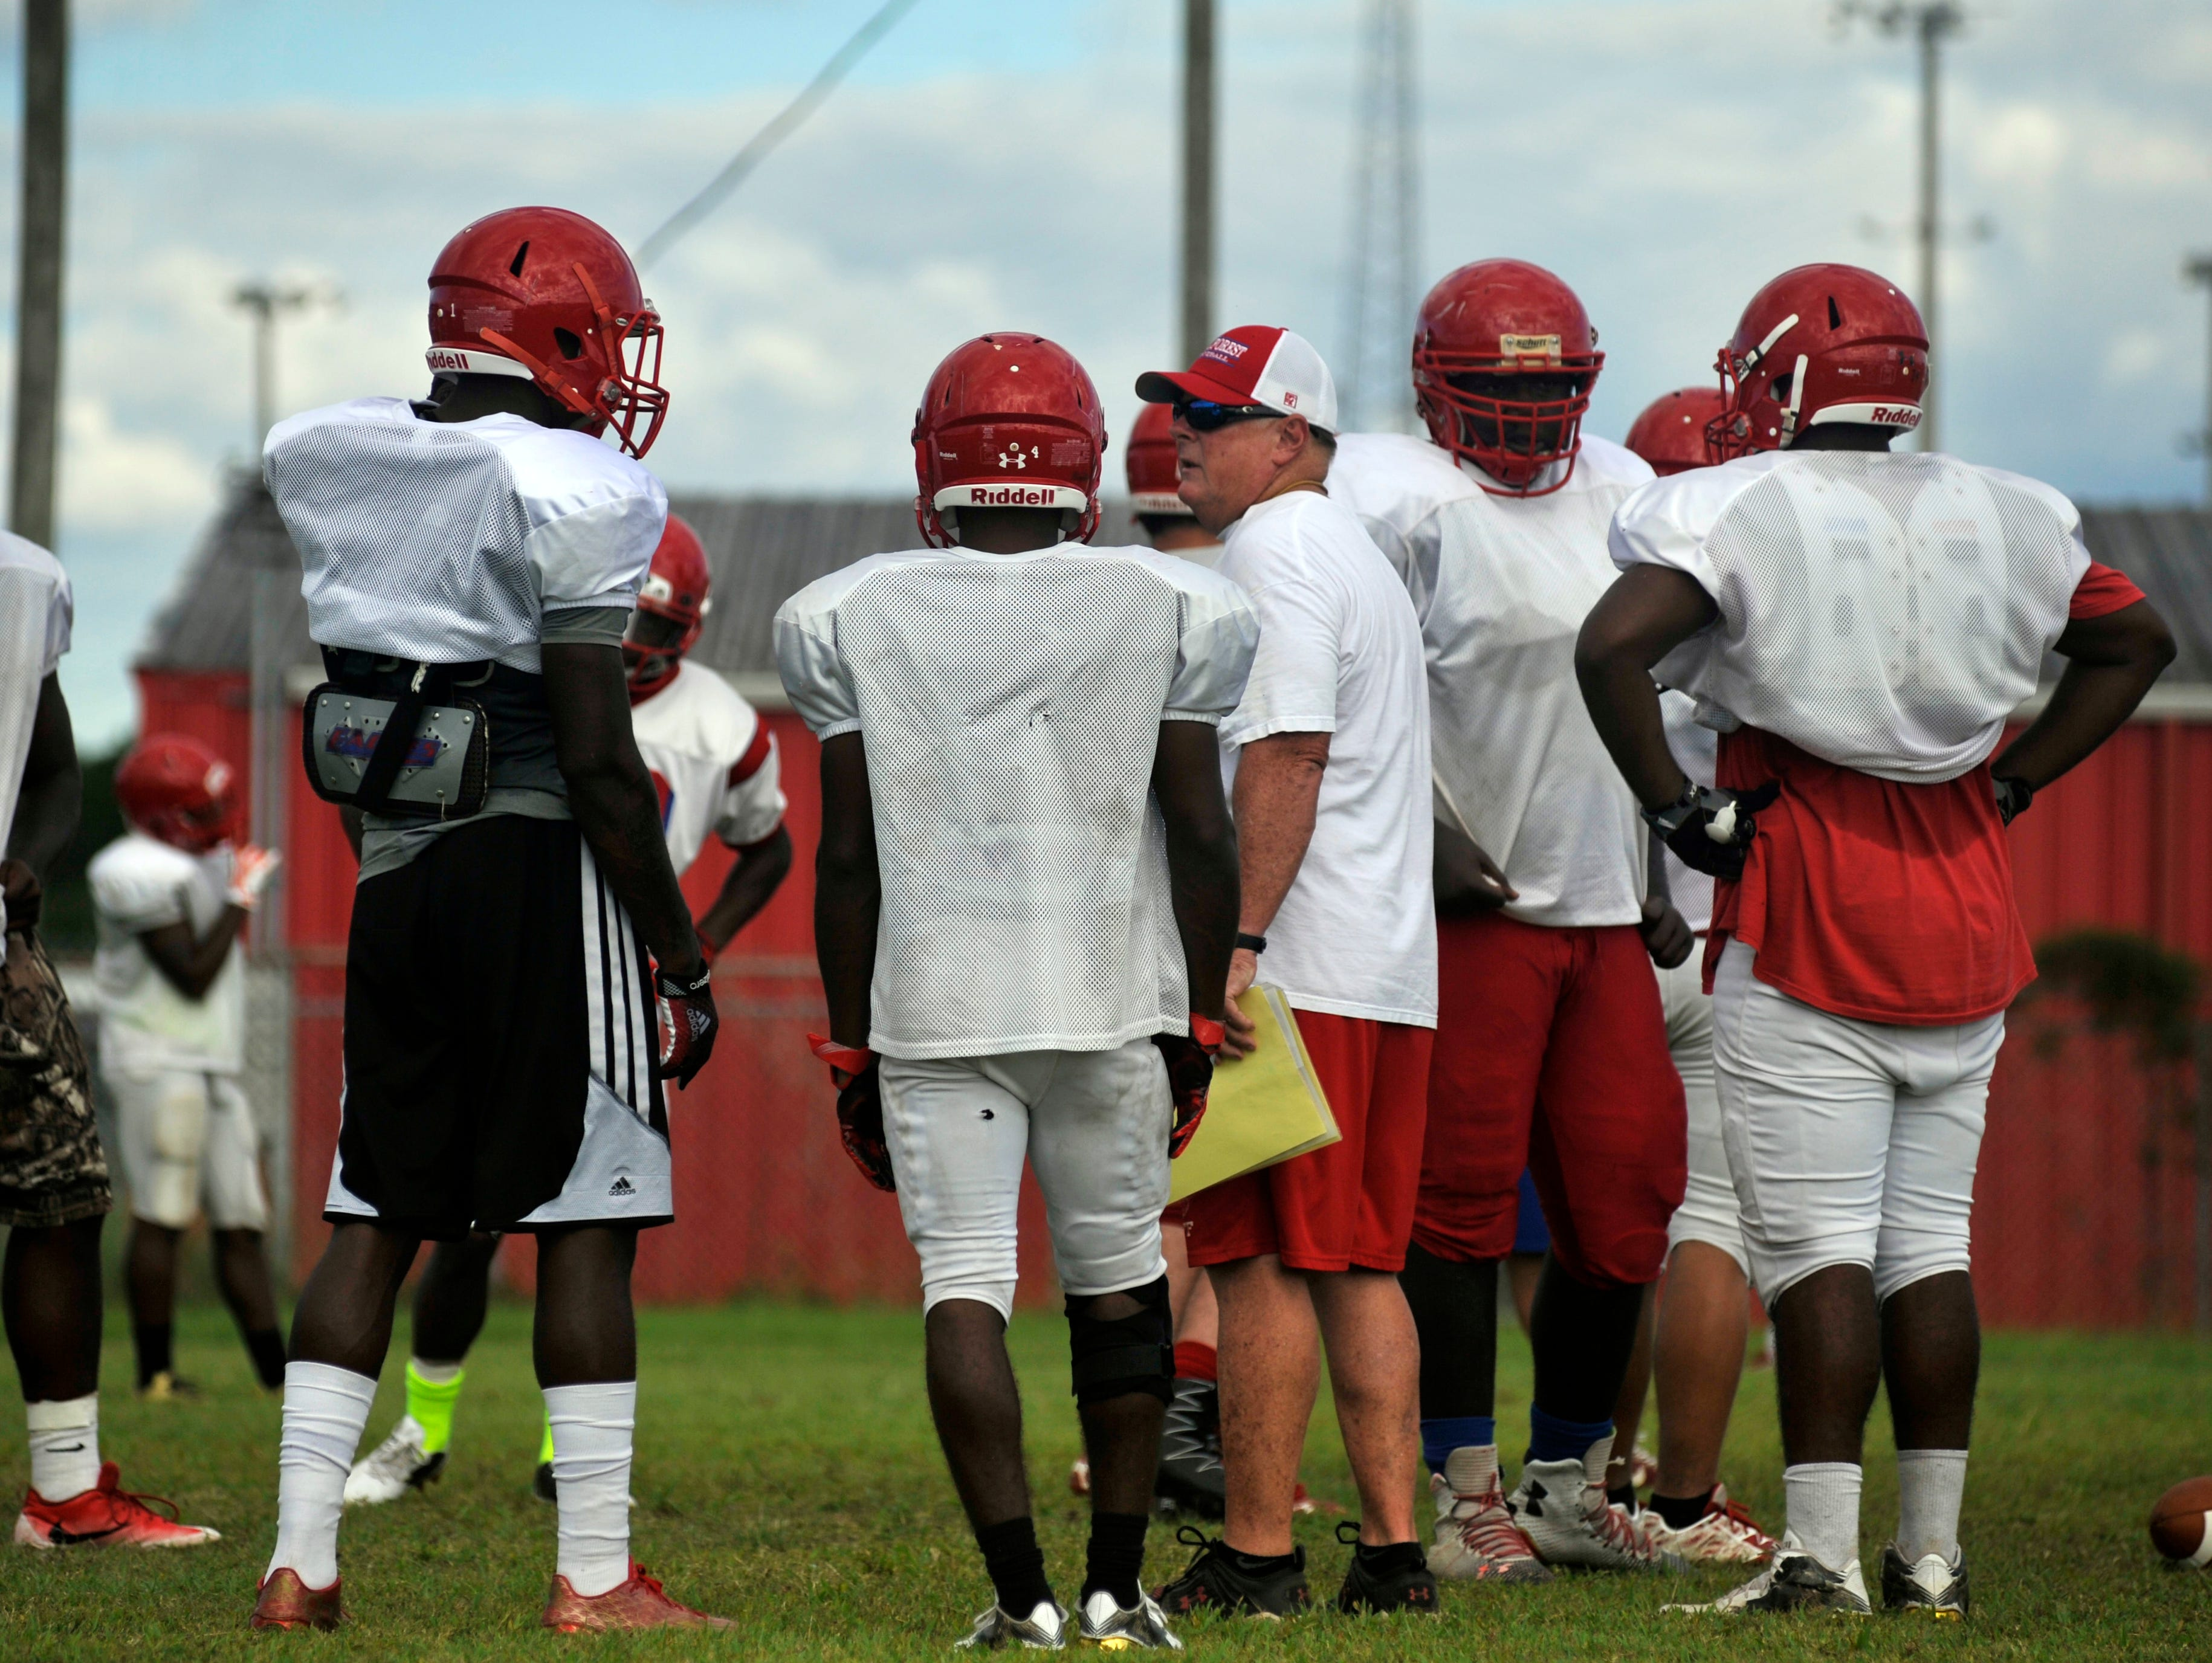 Pine Forest head coach Jerry Pollard speaks to his team during practice on Sept. 14, 2016.